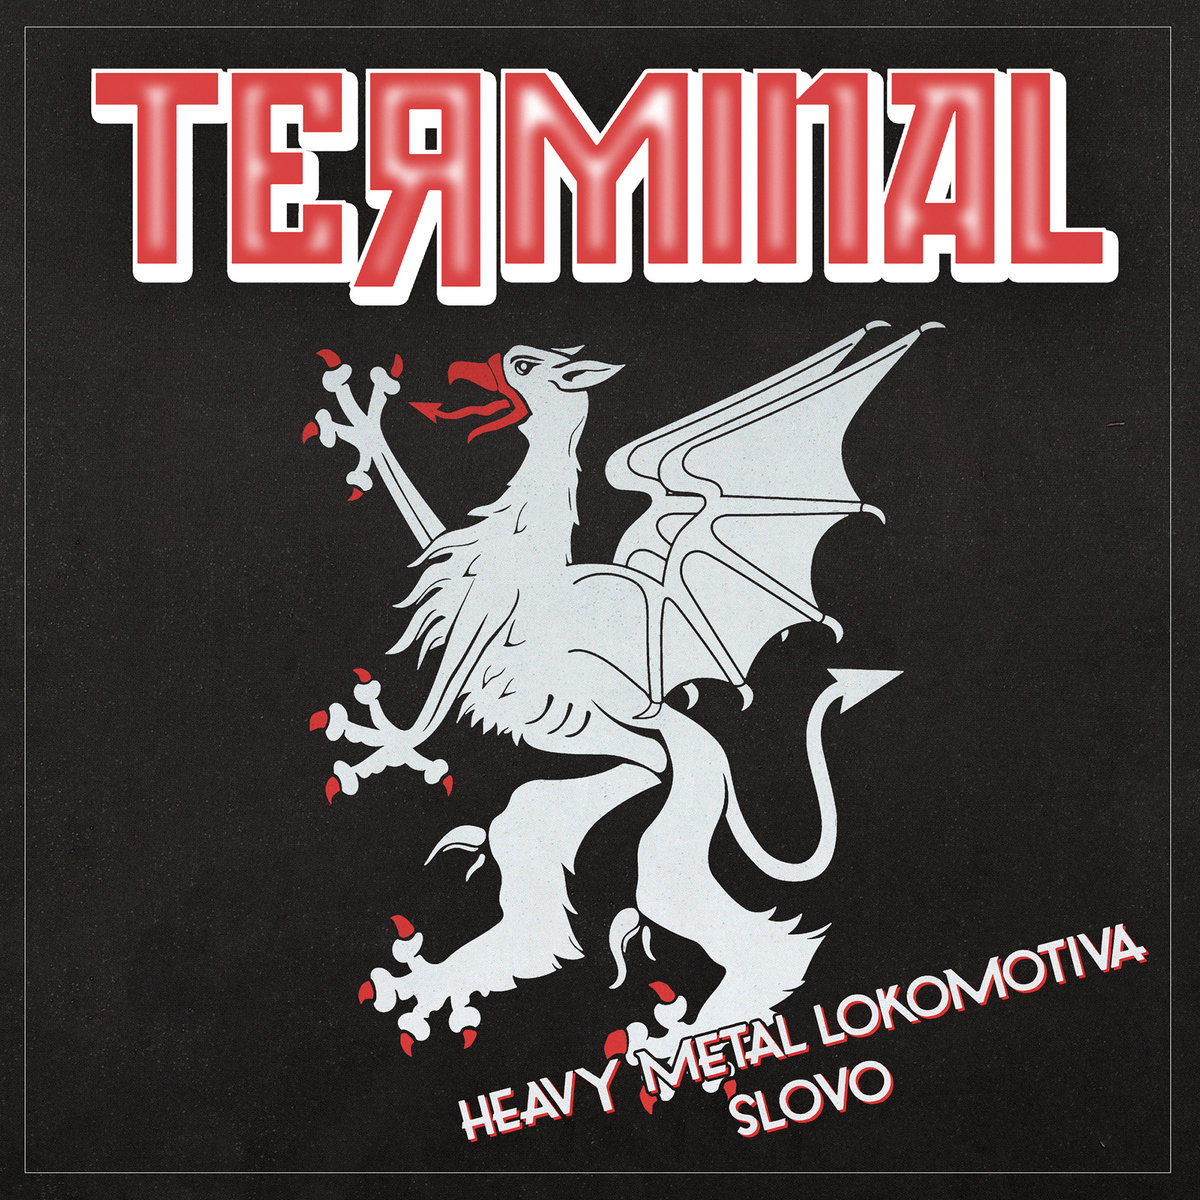 On Heavy Metal Heavy Metal Lokomotiva Electric Assault Records